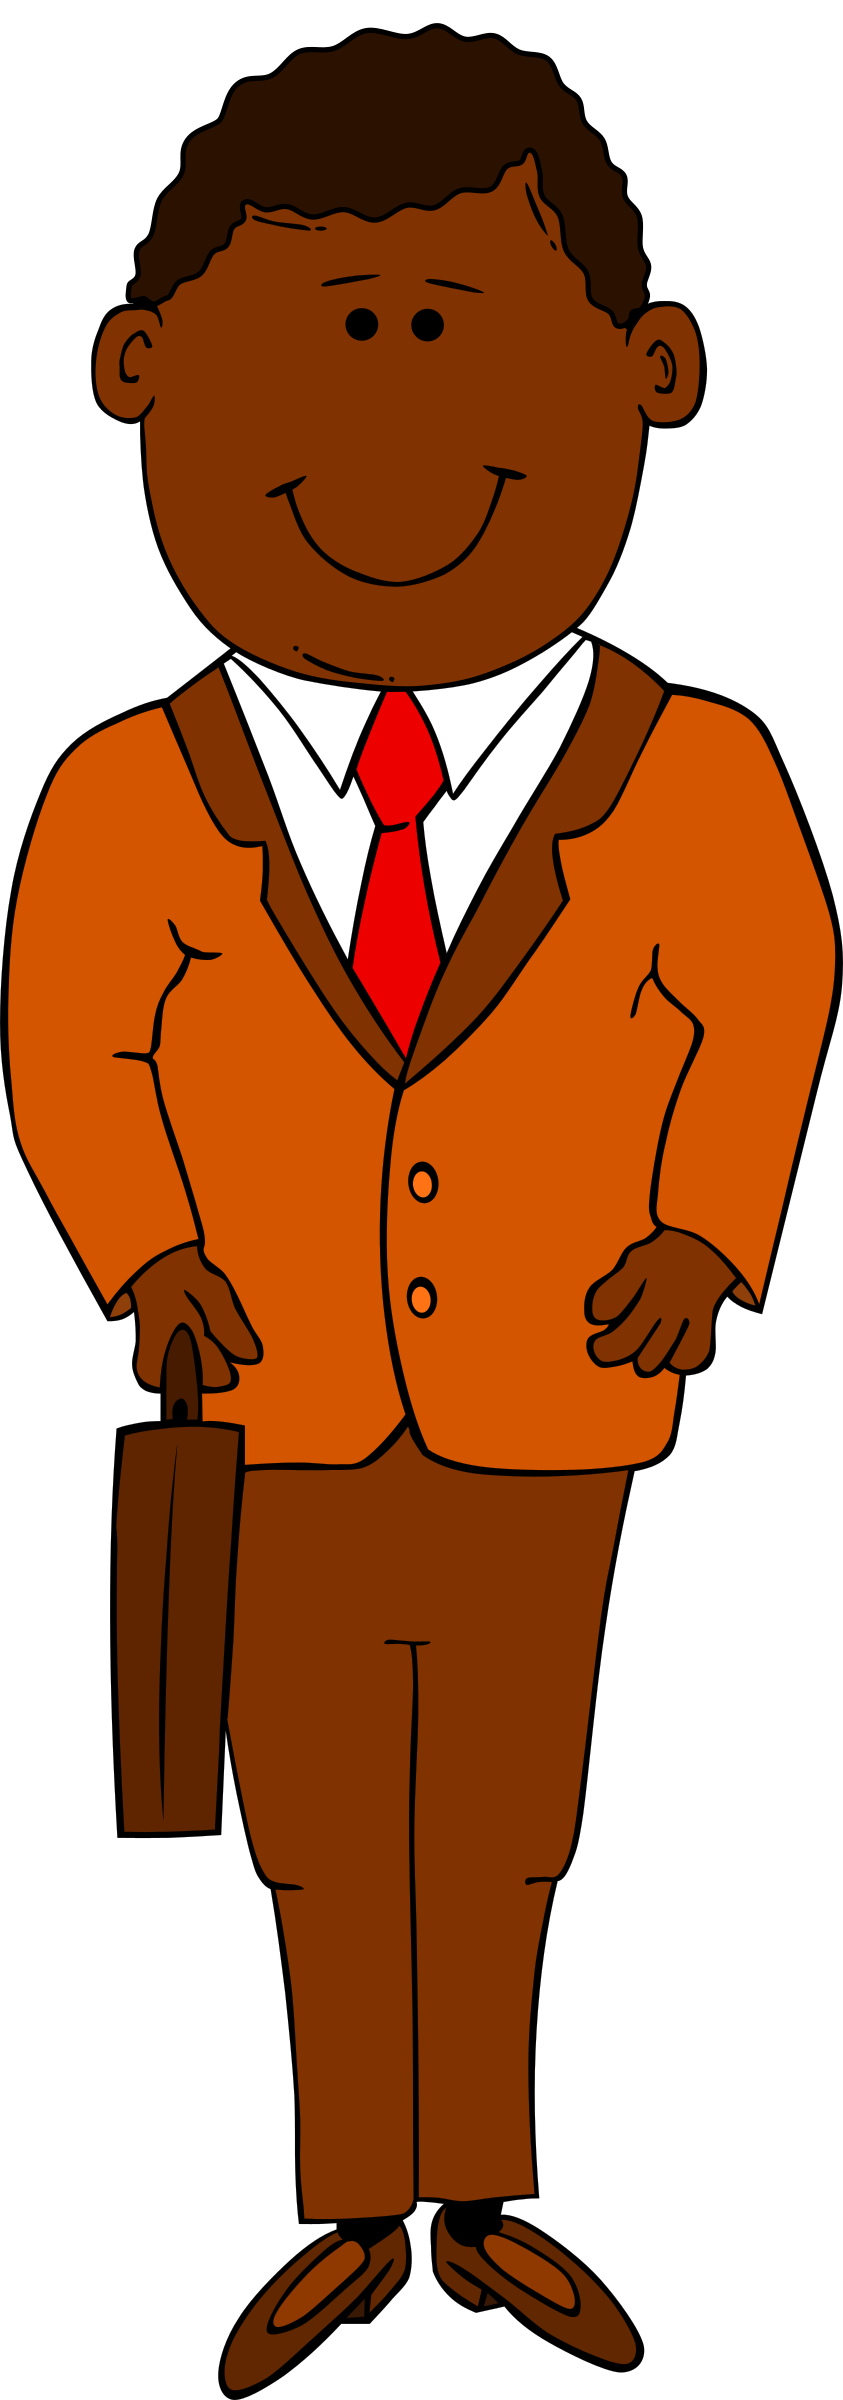 Make clipart coffee. Man in suit who